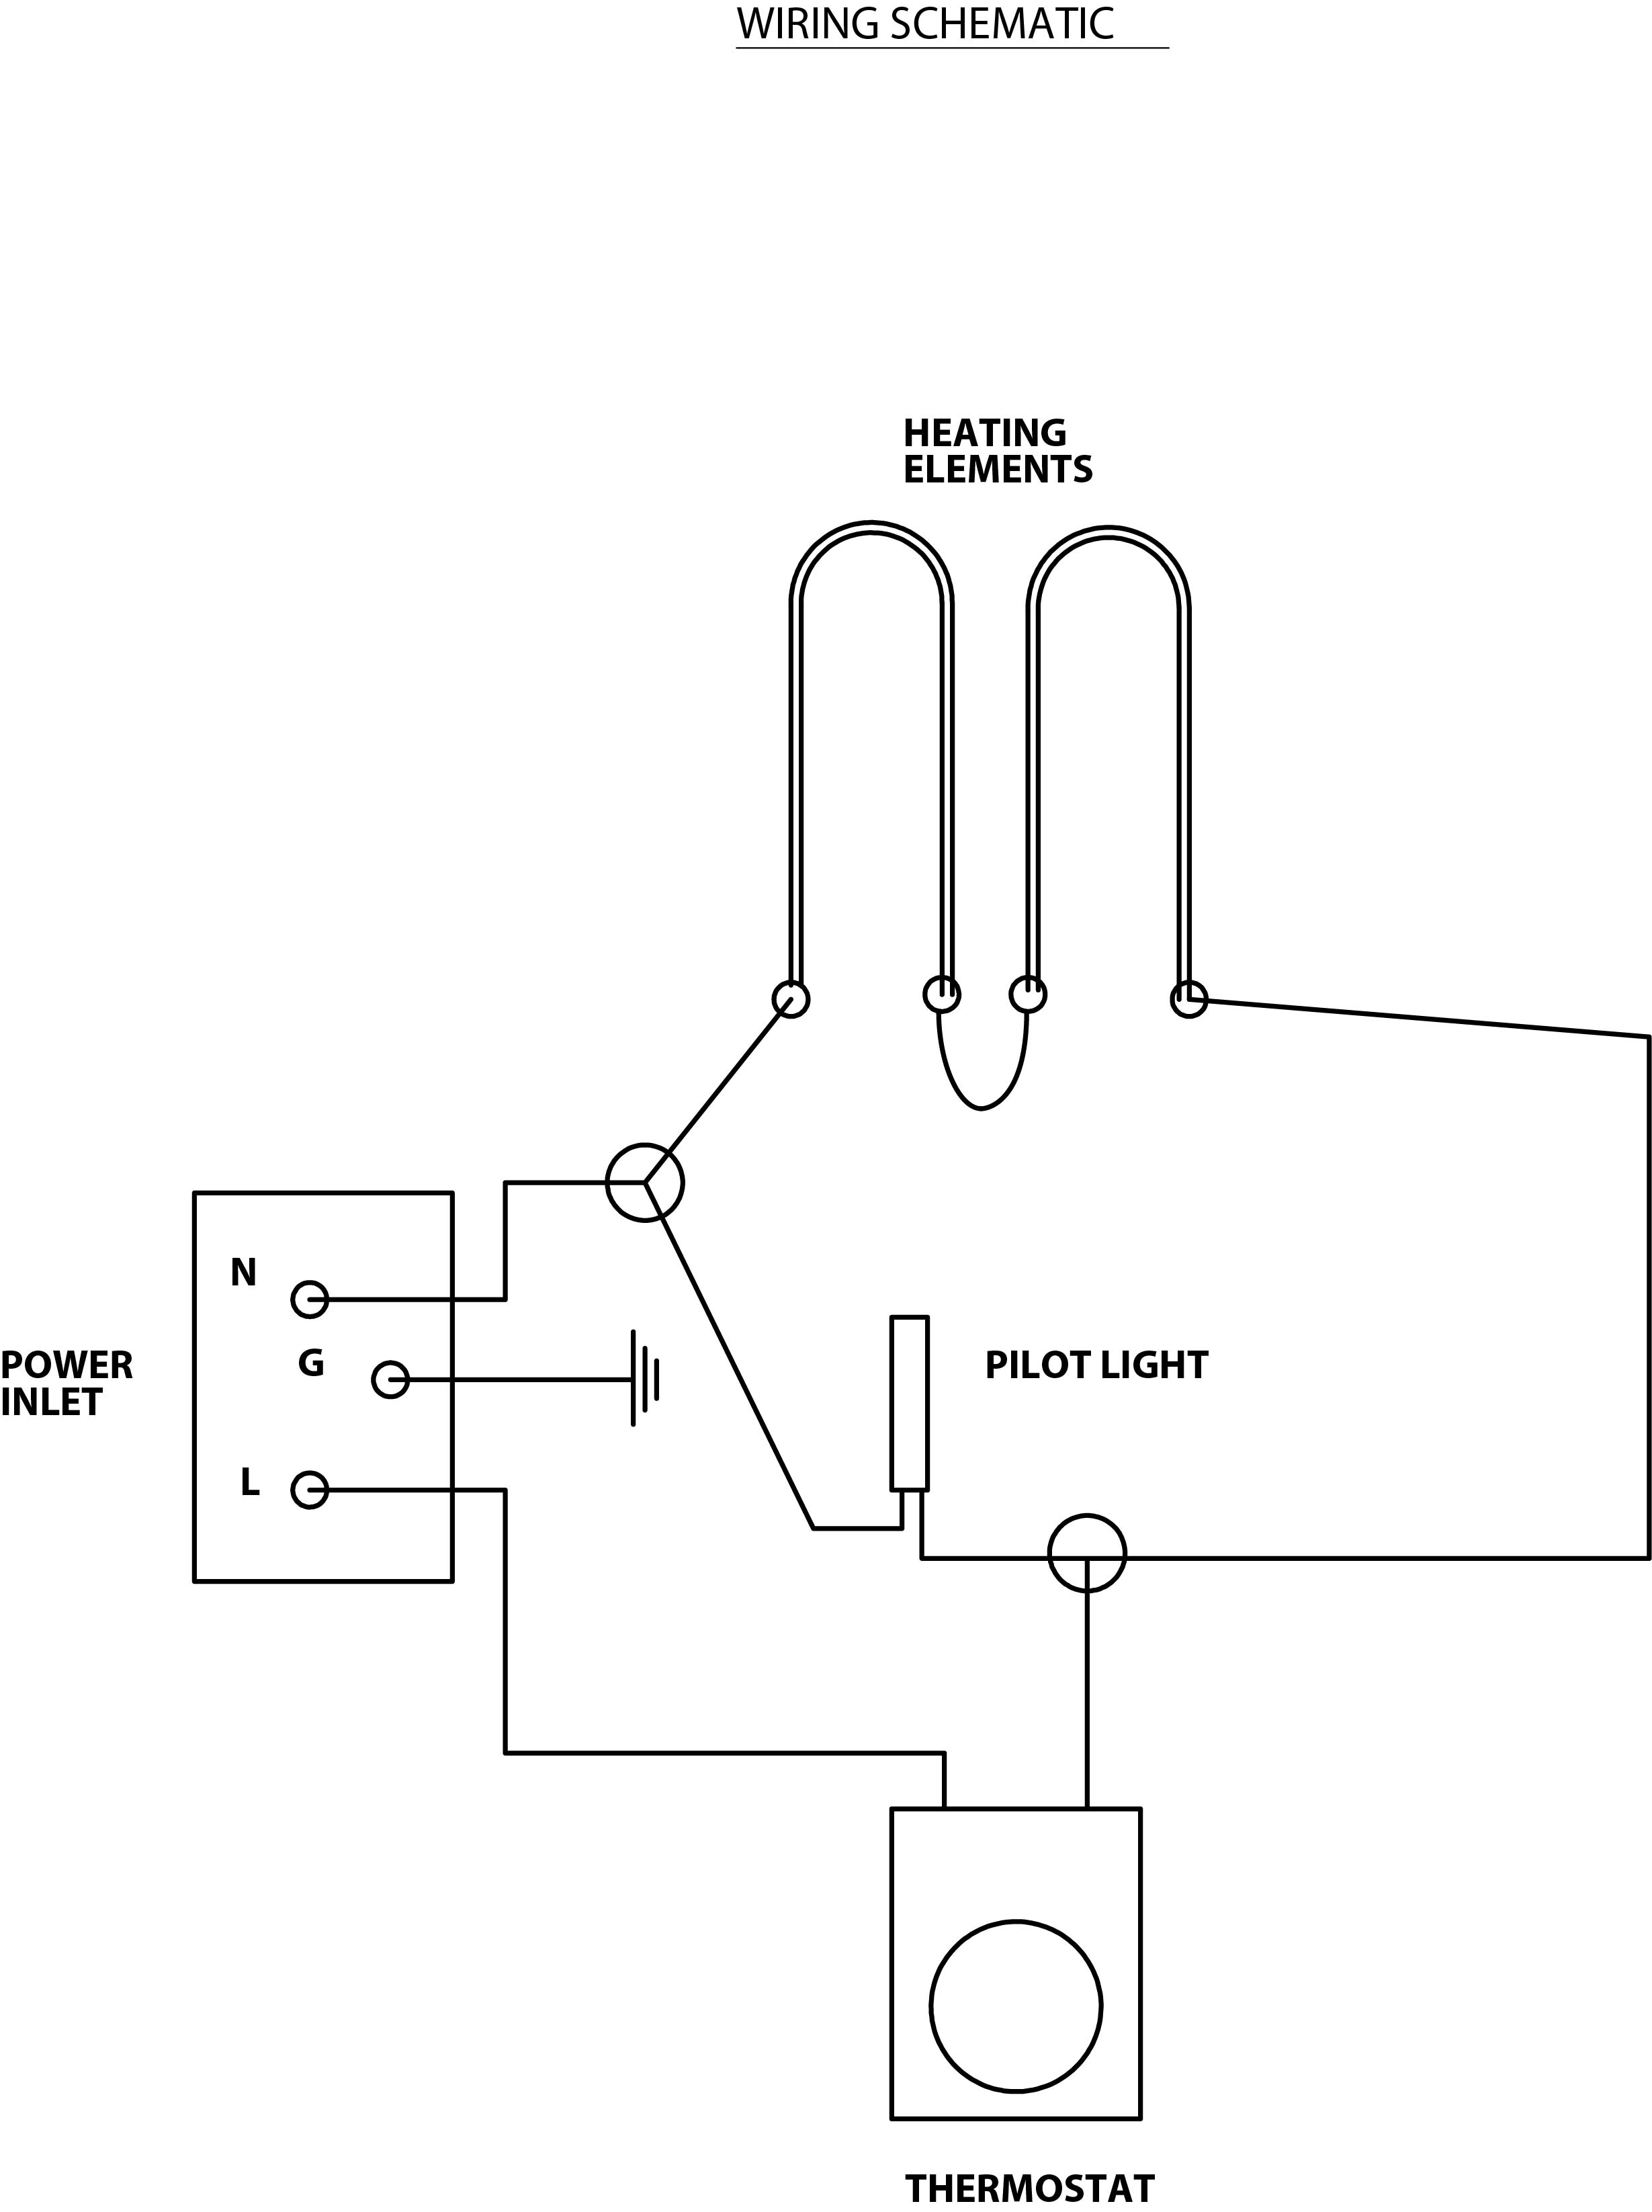 wiring diagramtype4 240v choose the right thermostat thermostat selection guide cadet heating element wiring diagram at creativeand.co